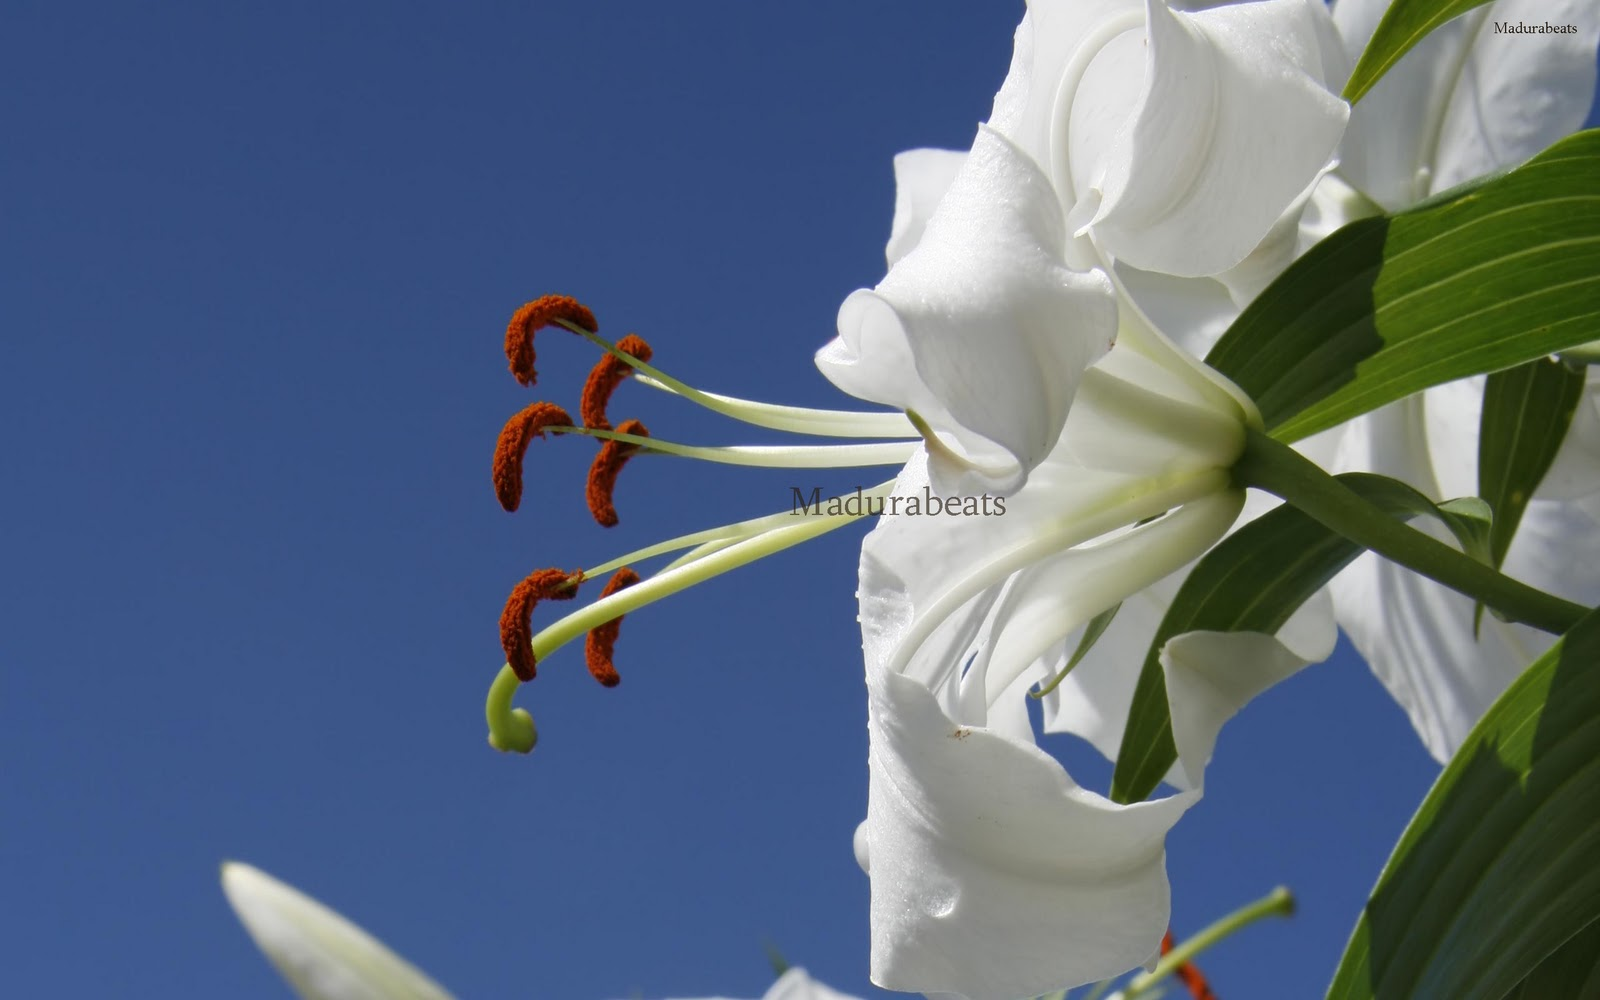 Flower images, Wide screen wallpapers,fresh flowers,Beautiful flowers,Belladonna_lily_White_Flower_with_sky_hd_wallpaper